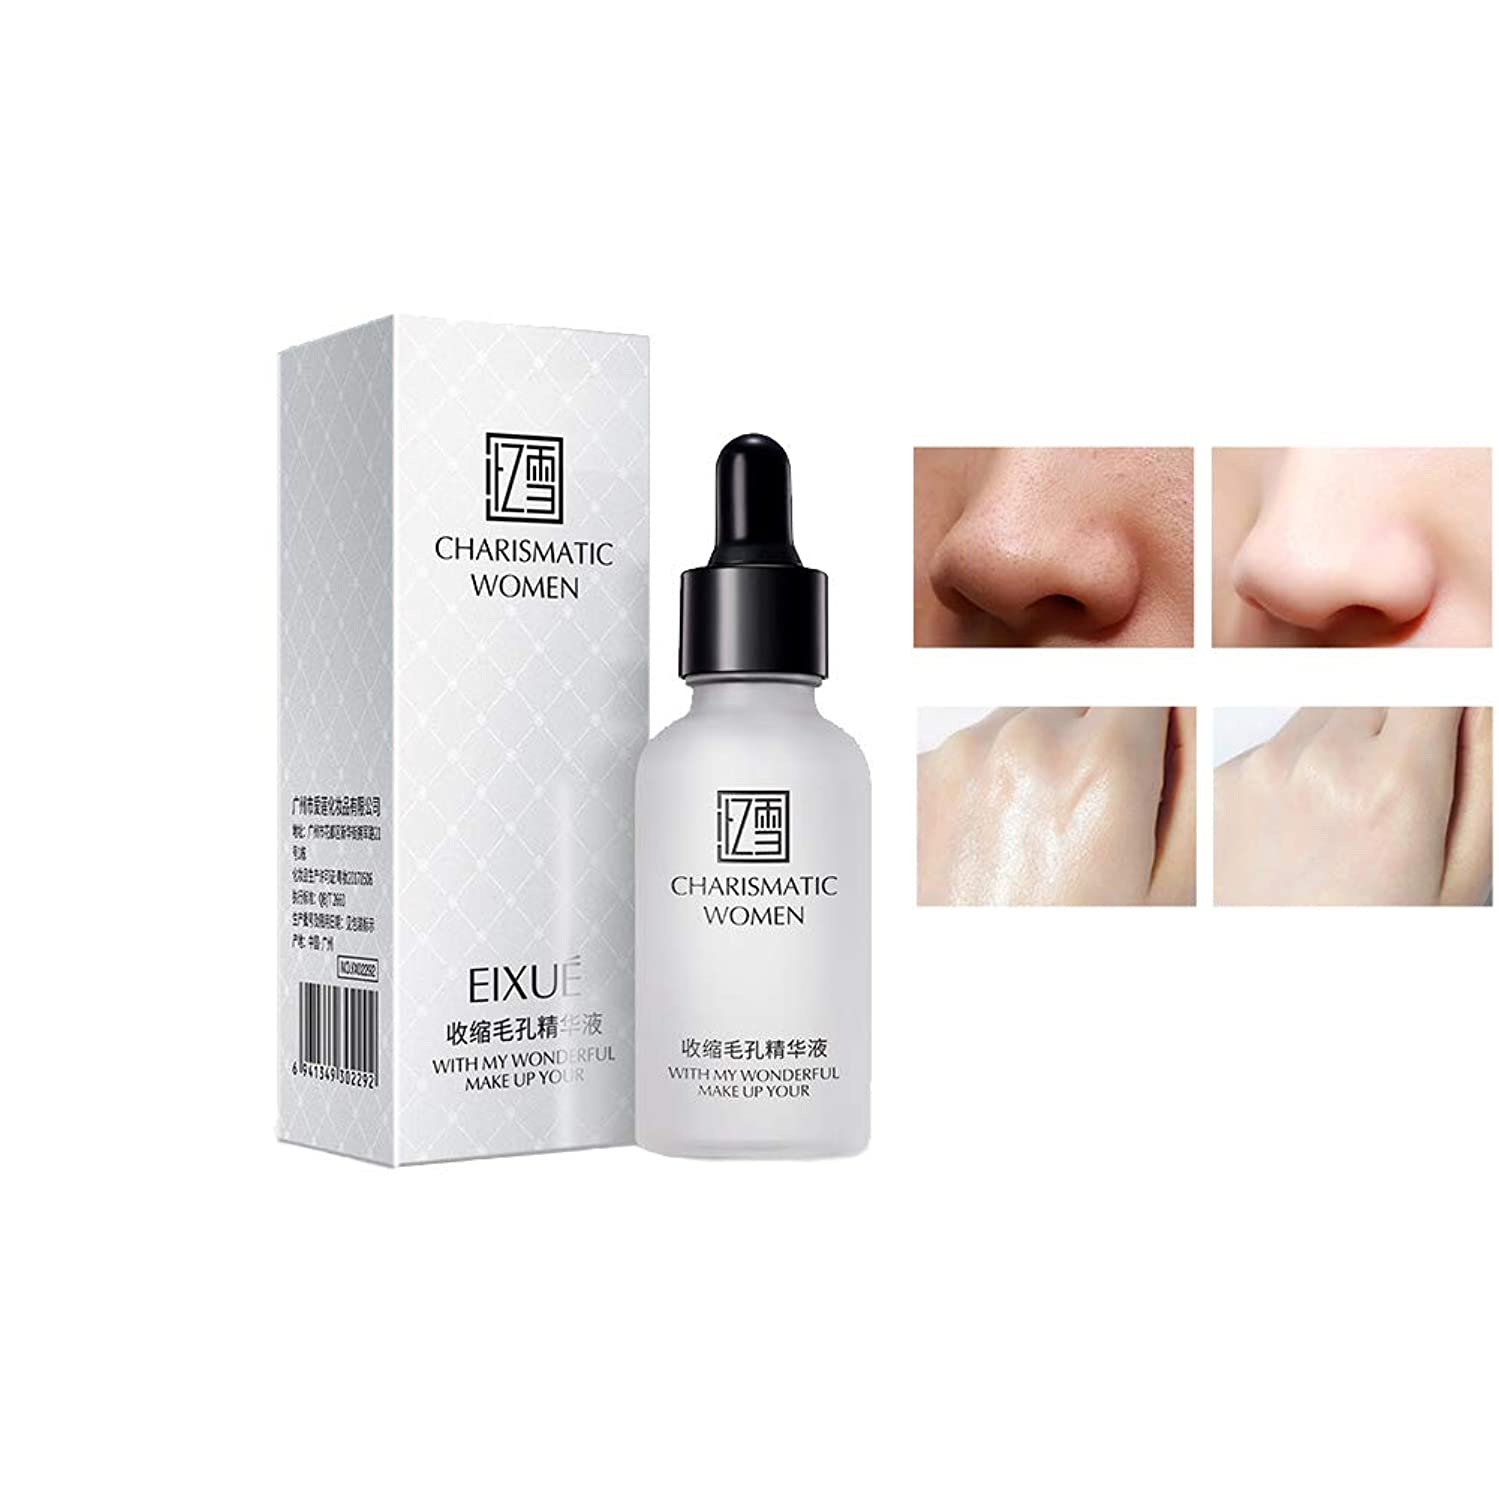 RedDhong Fine Pores Shrinking Essence, Moisturizing Balance Oil and Water, Improve Dry Rough Skin, Deep Cleansing Pore Minimizer Essence